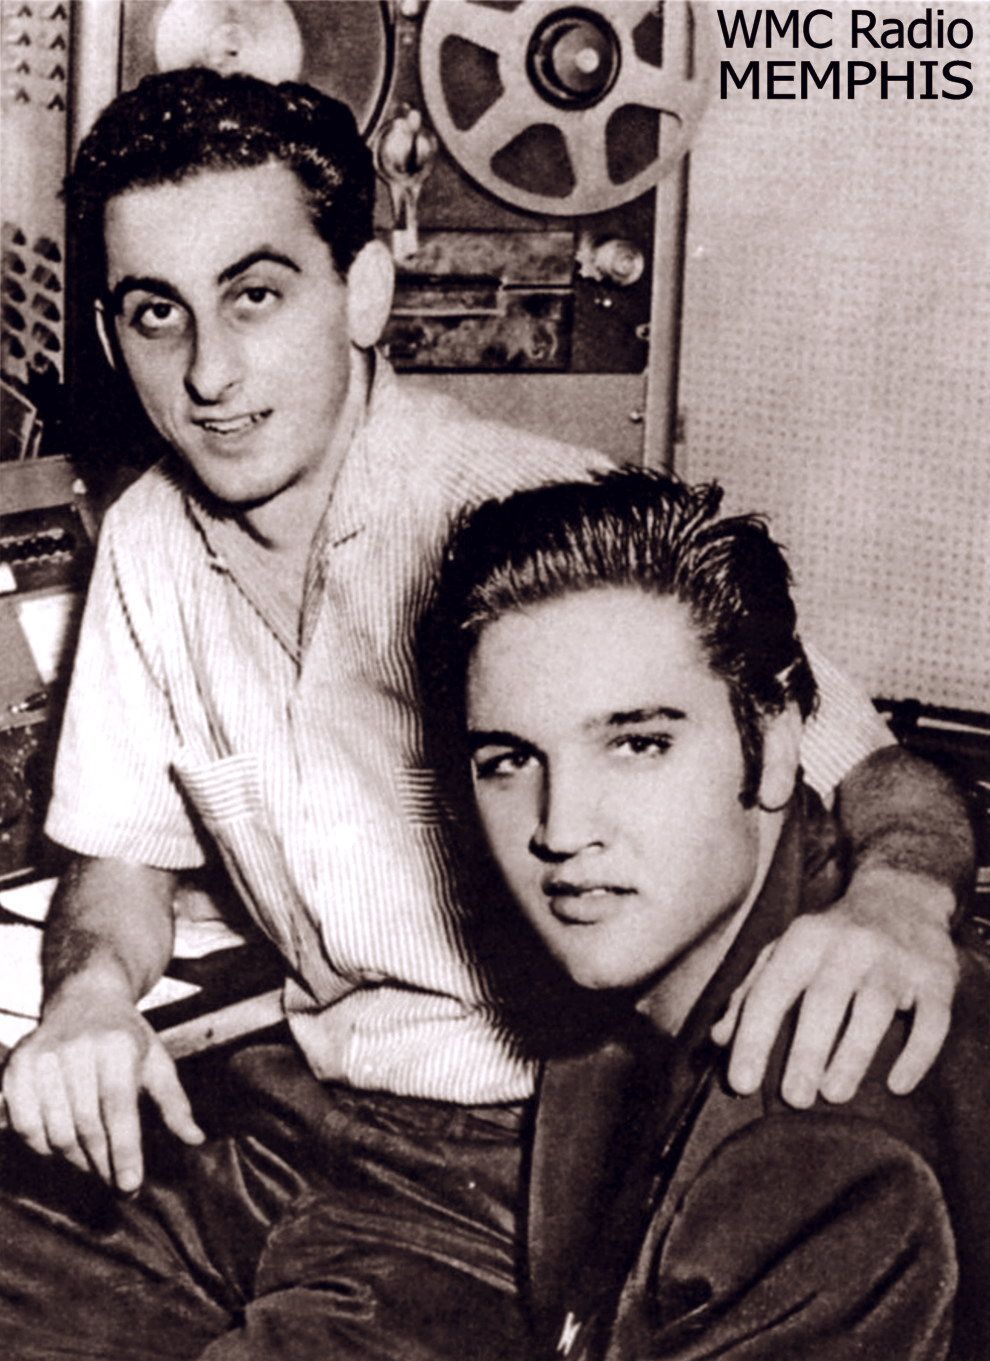 Here a picture from december 7 1956 when Elvis visit his friend Georges Klein at the radio station.